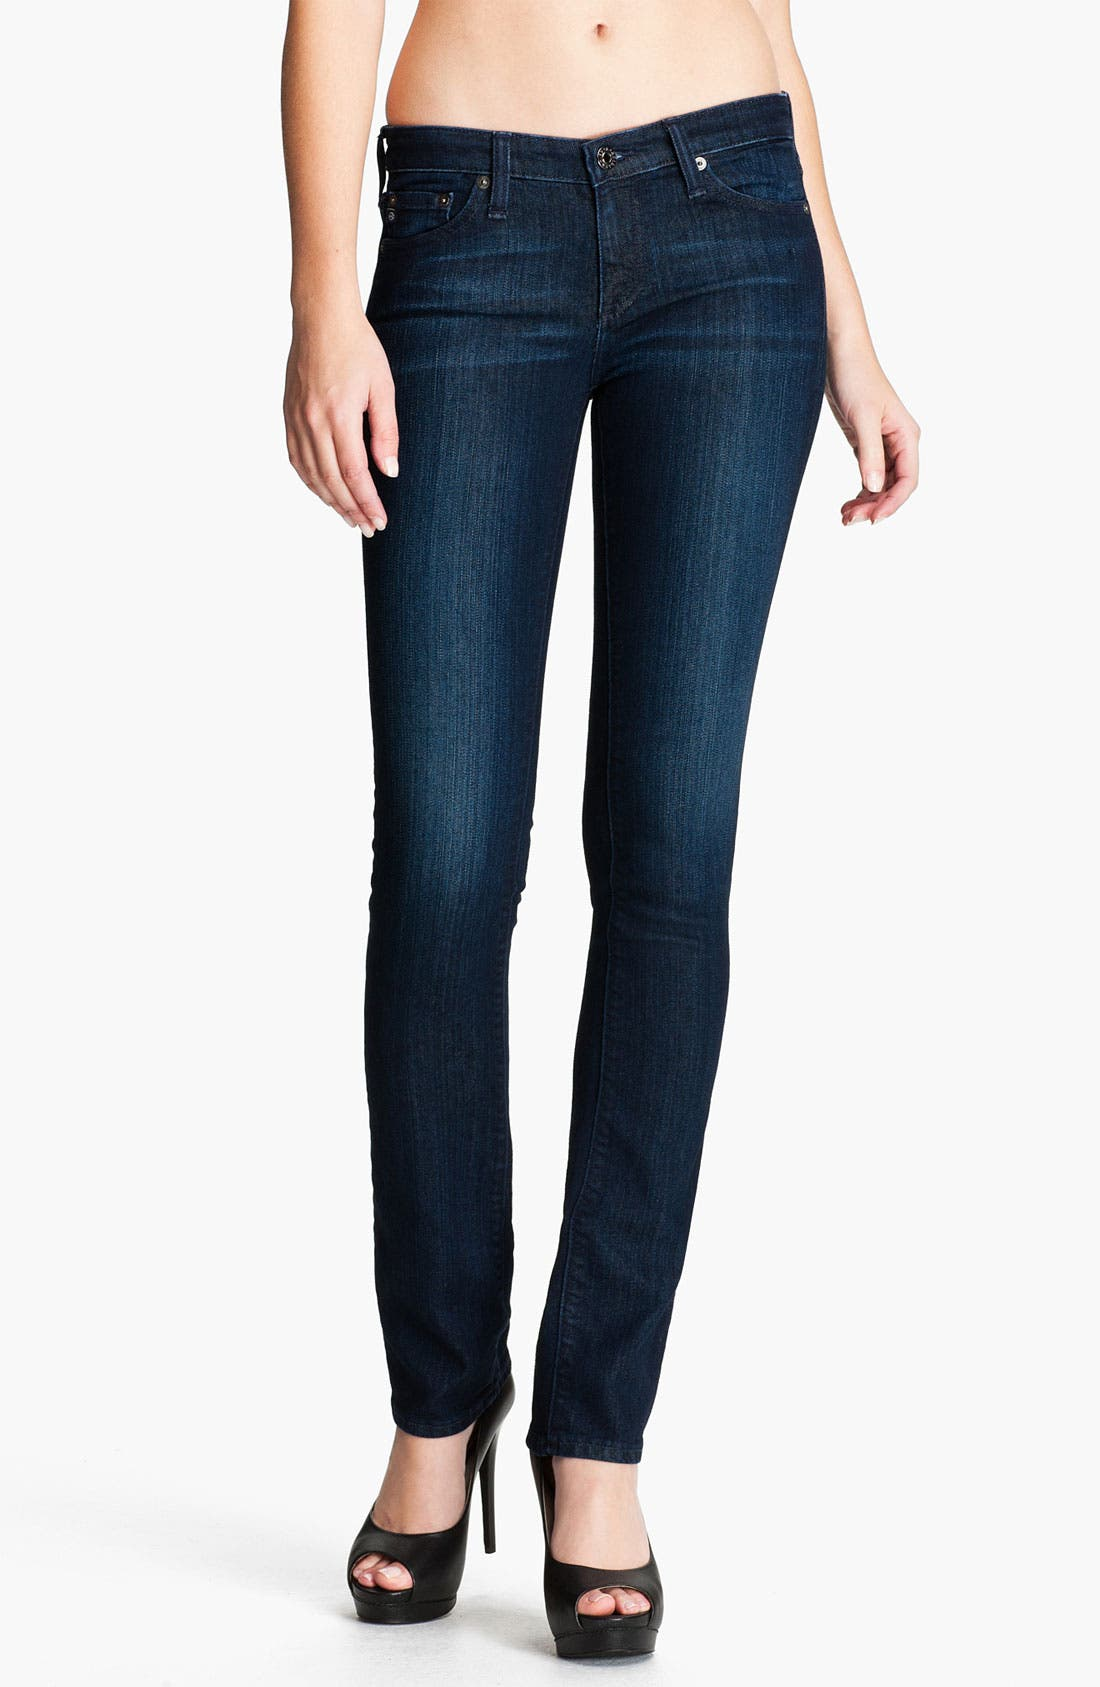 Alternate Image 1 Selected - AG Jeans 'Ballad' Slim Bootcut Stretch Jeans (Viy Vision)